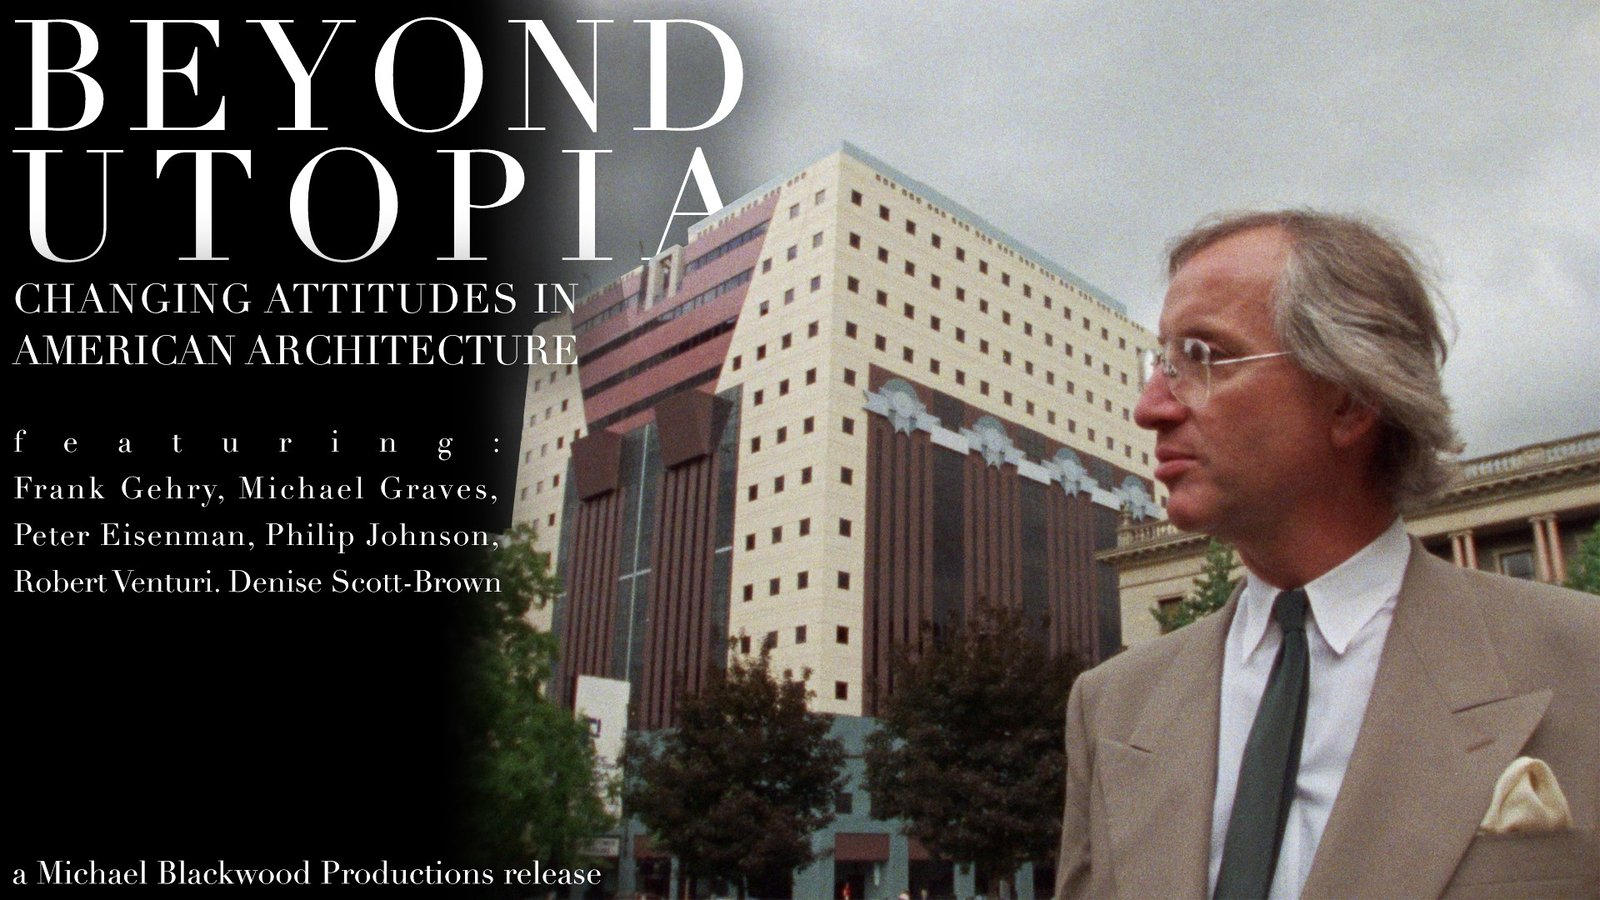 Beyond Utopia - Changing Attitudes in American Architecture